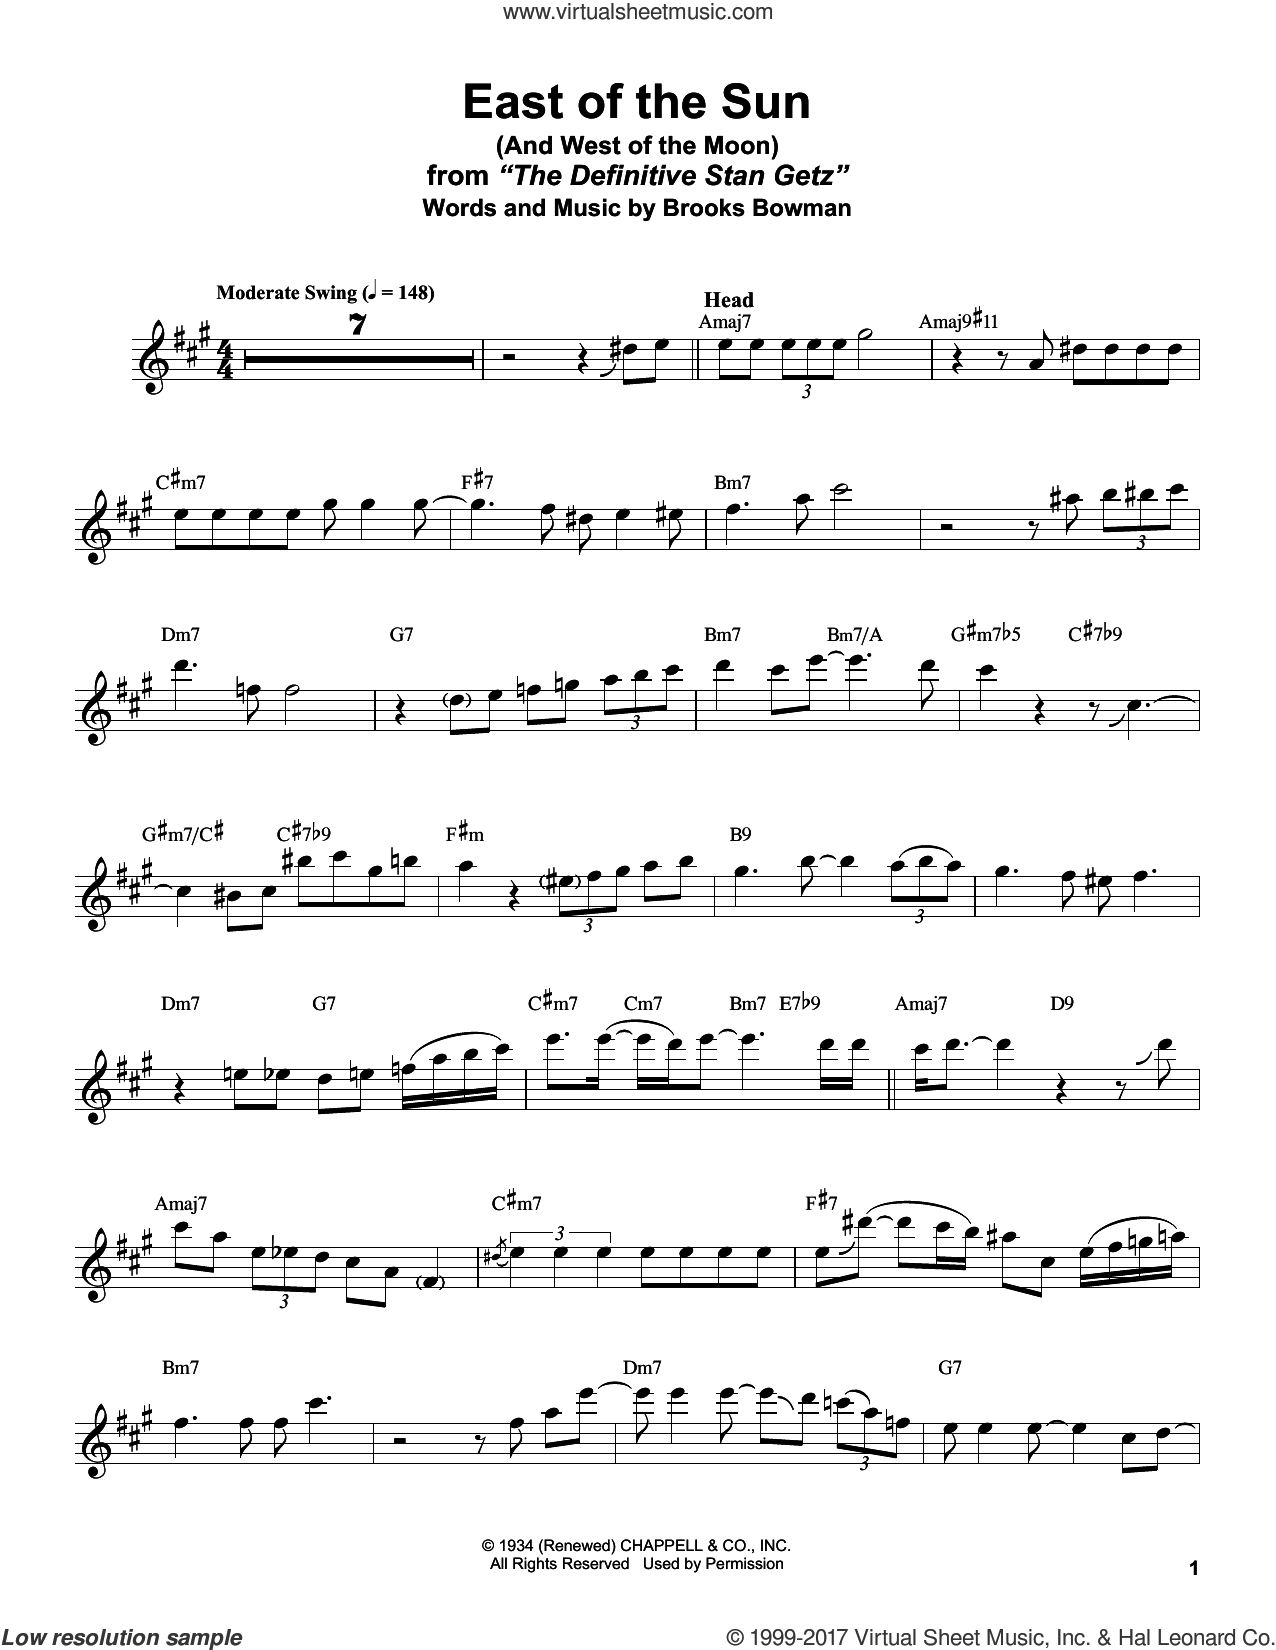 East Of The Sun (And West Of The Moon) sheet music for tenor saxophone solo (transcription) by Stan Getz and Brooks Bowman. Score Image Preview.